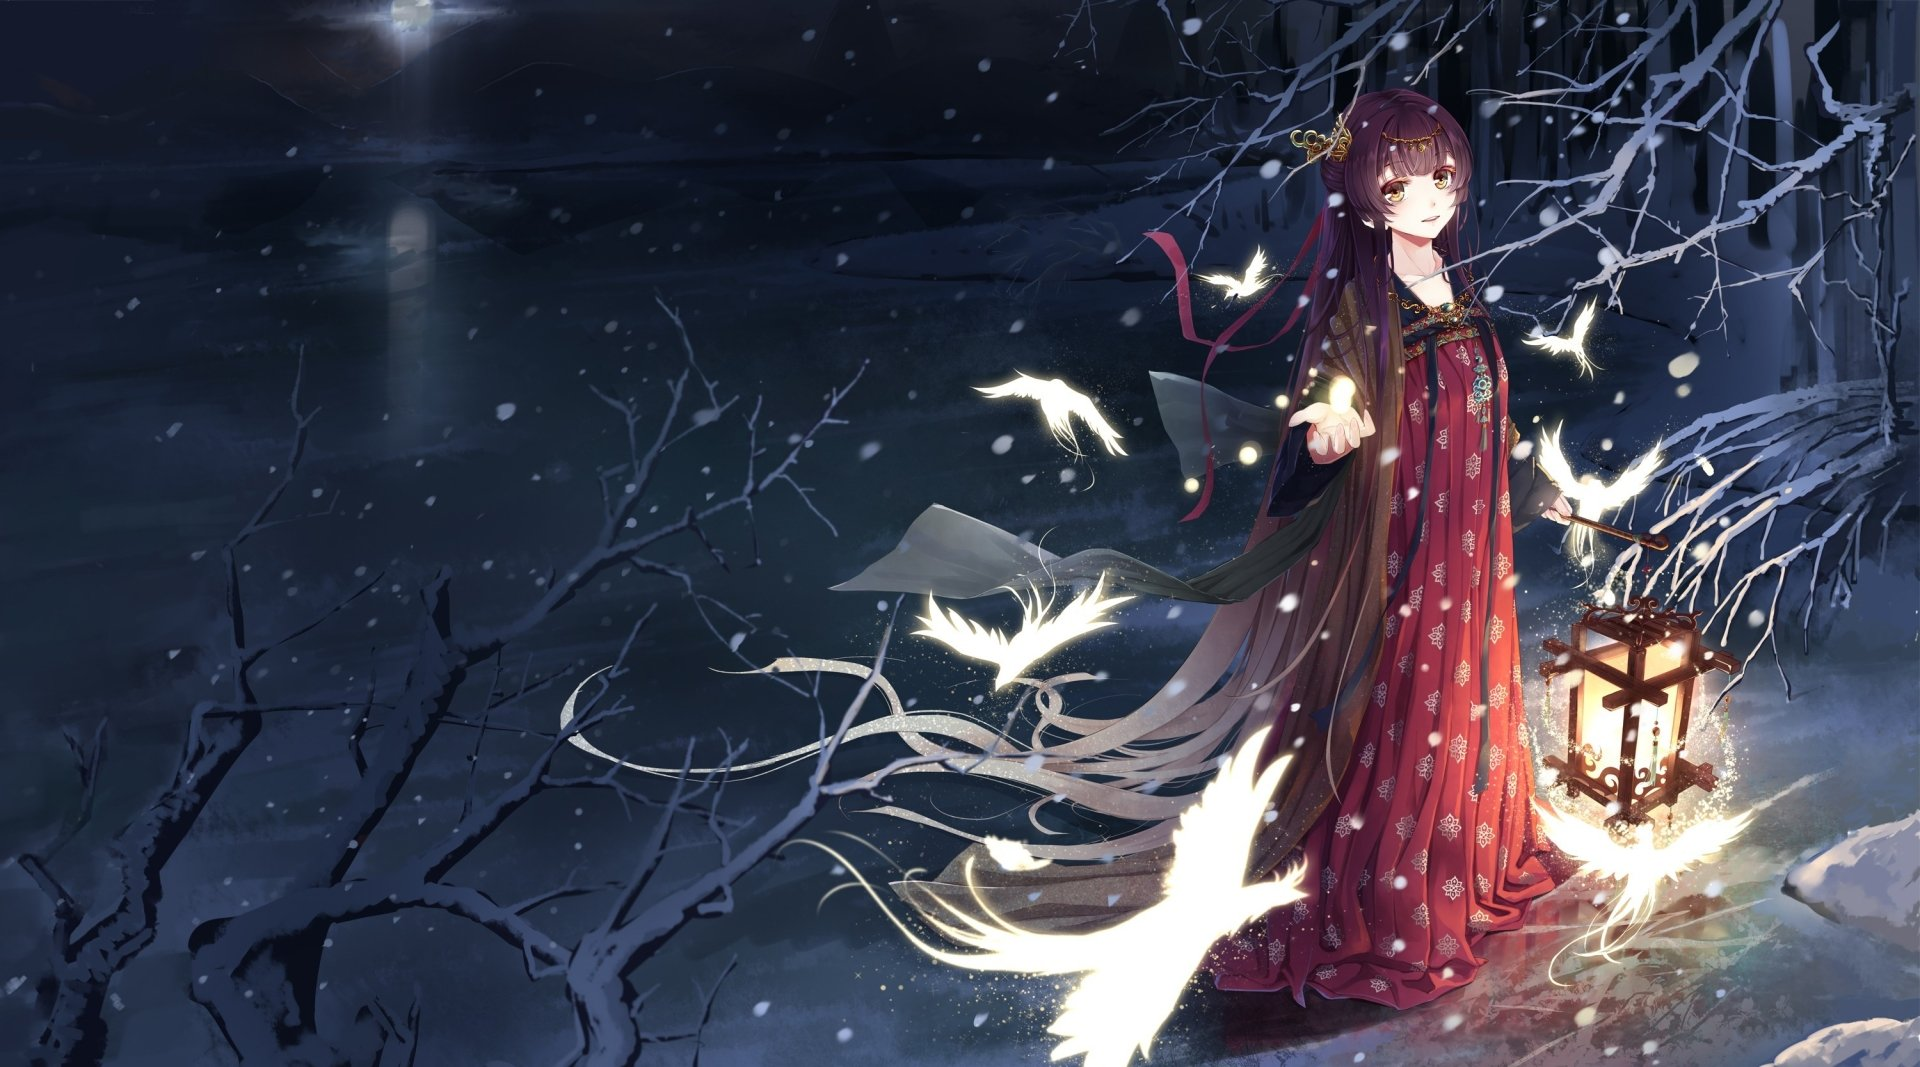 Anime - Original  Bird Lantern Girl Snowfall Winter Anime Original (Anime) Wallpaper